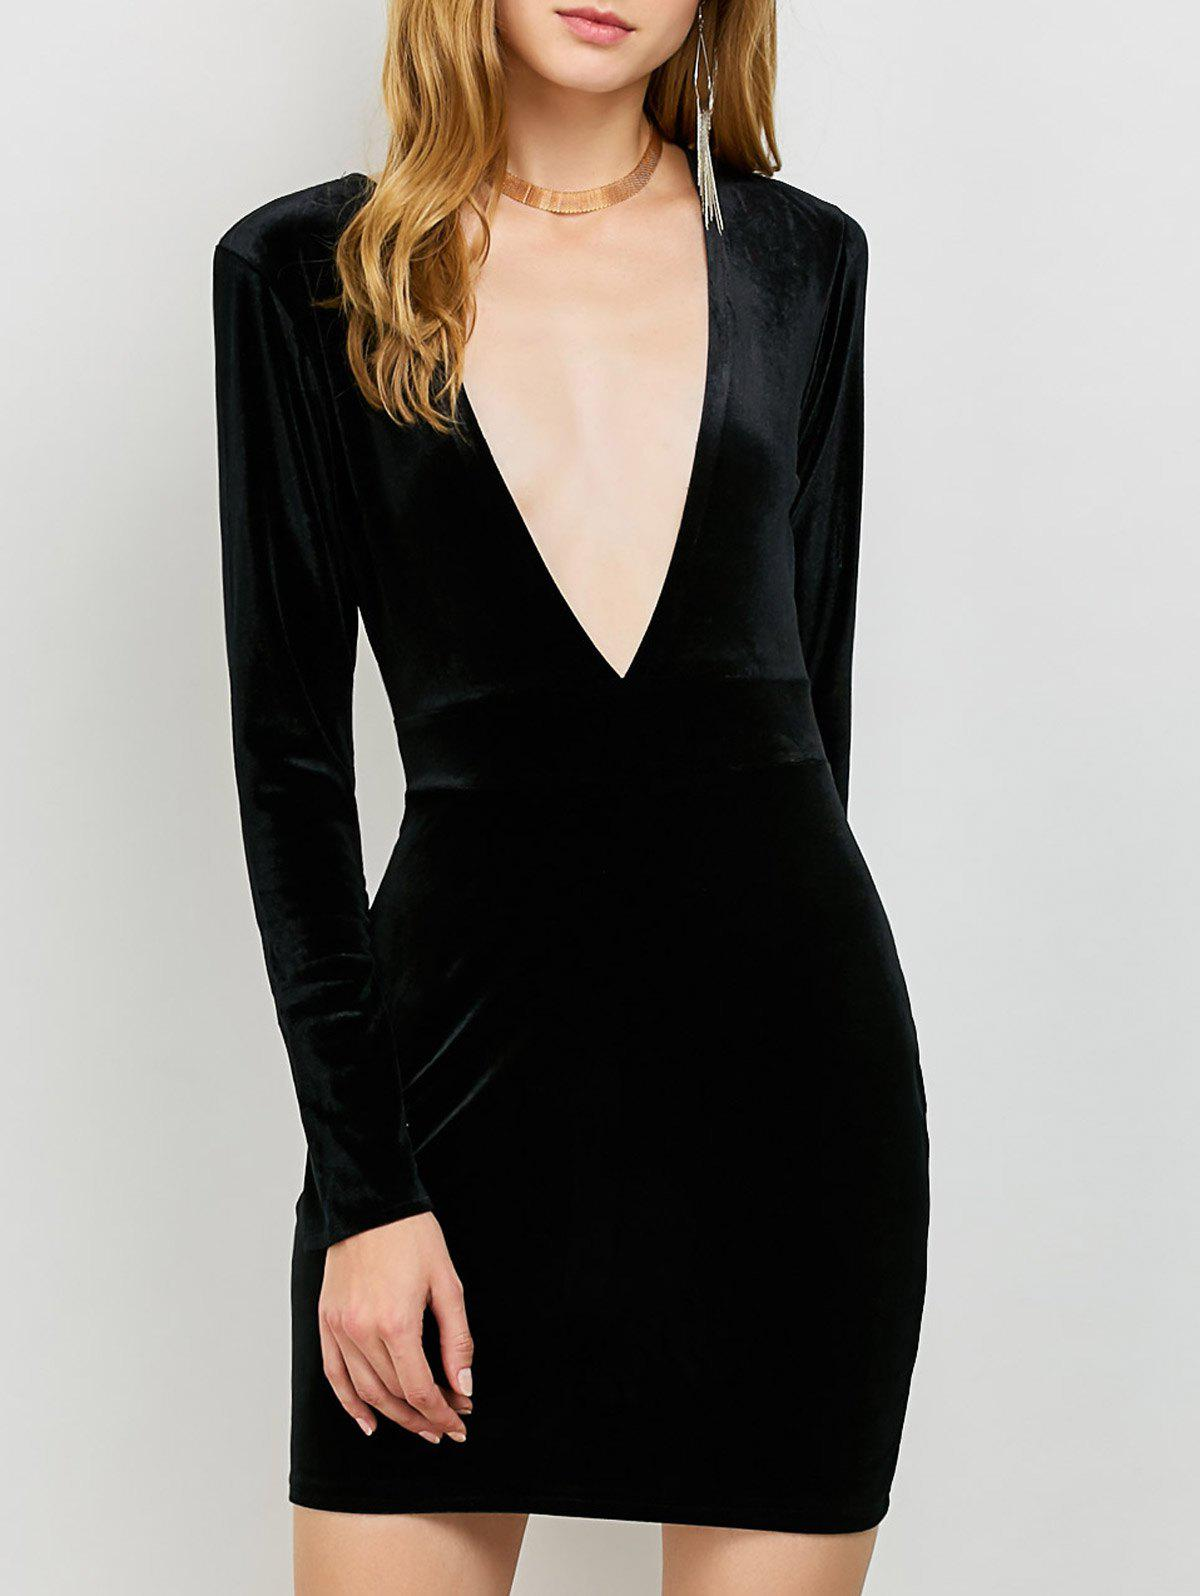 Low Cut Velvet Bodycon Long Sleeve Dress